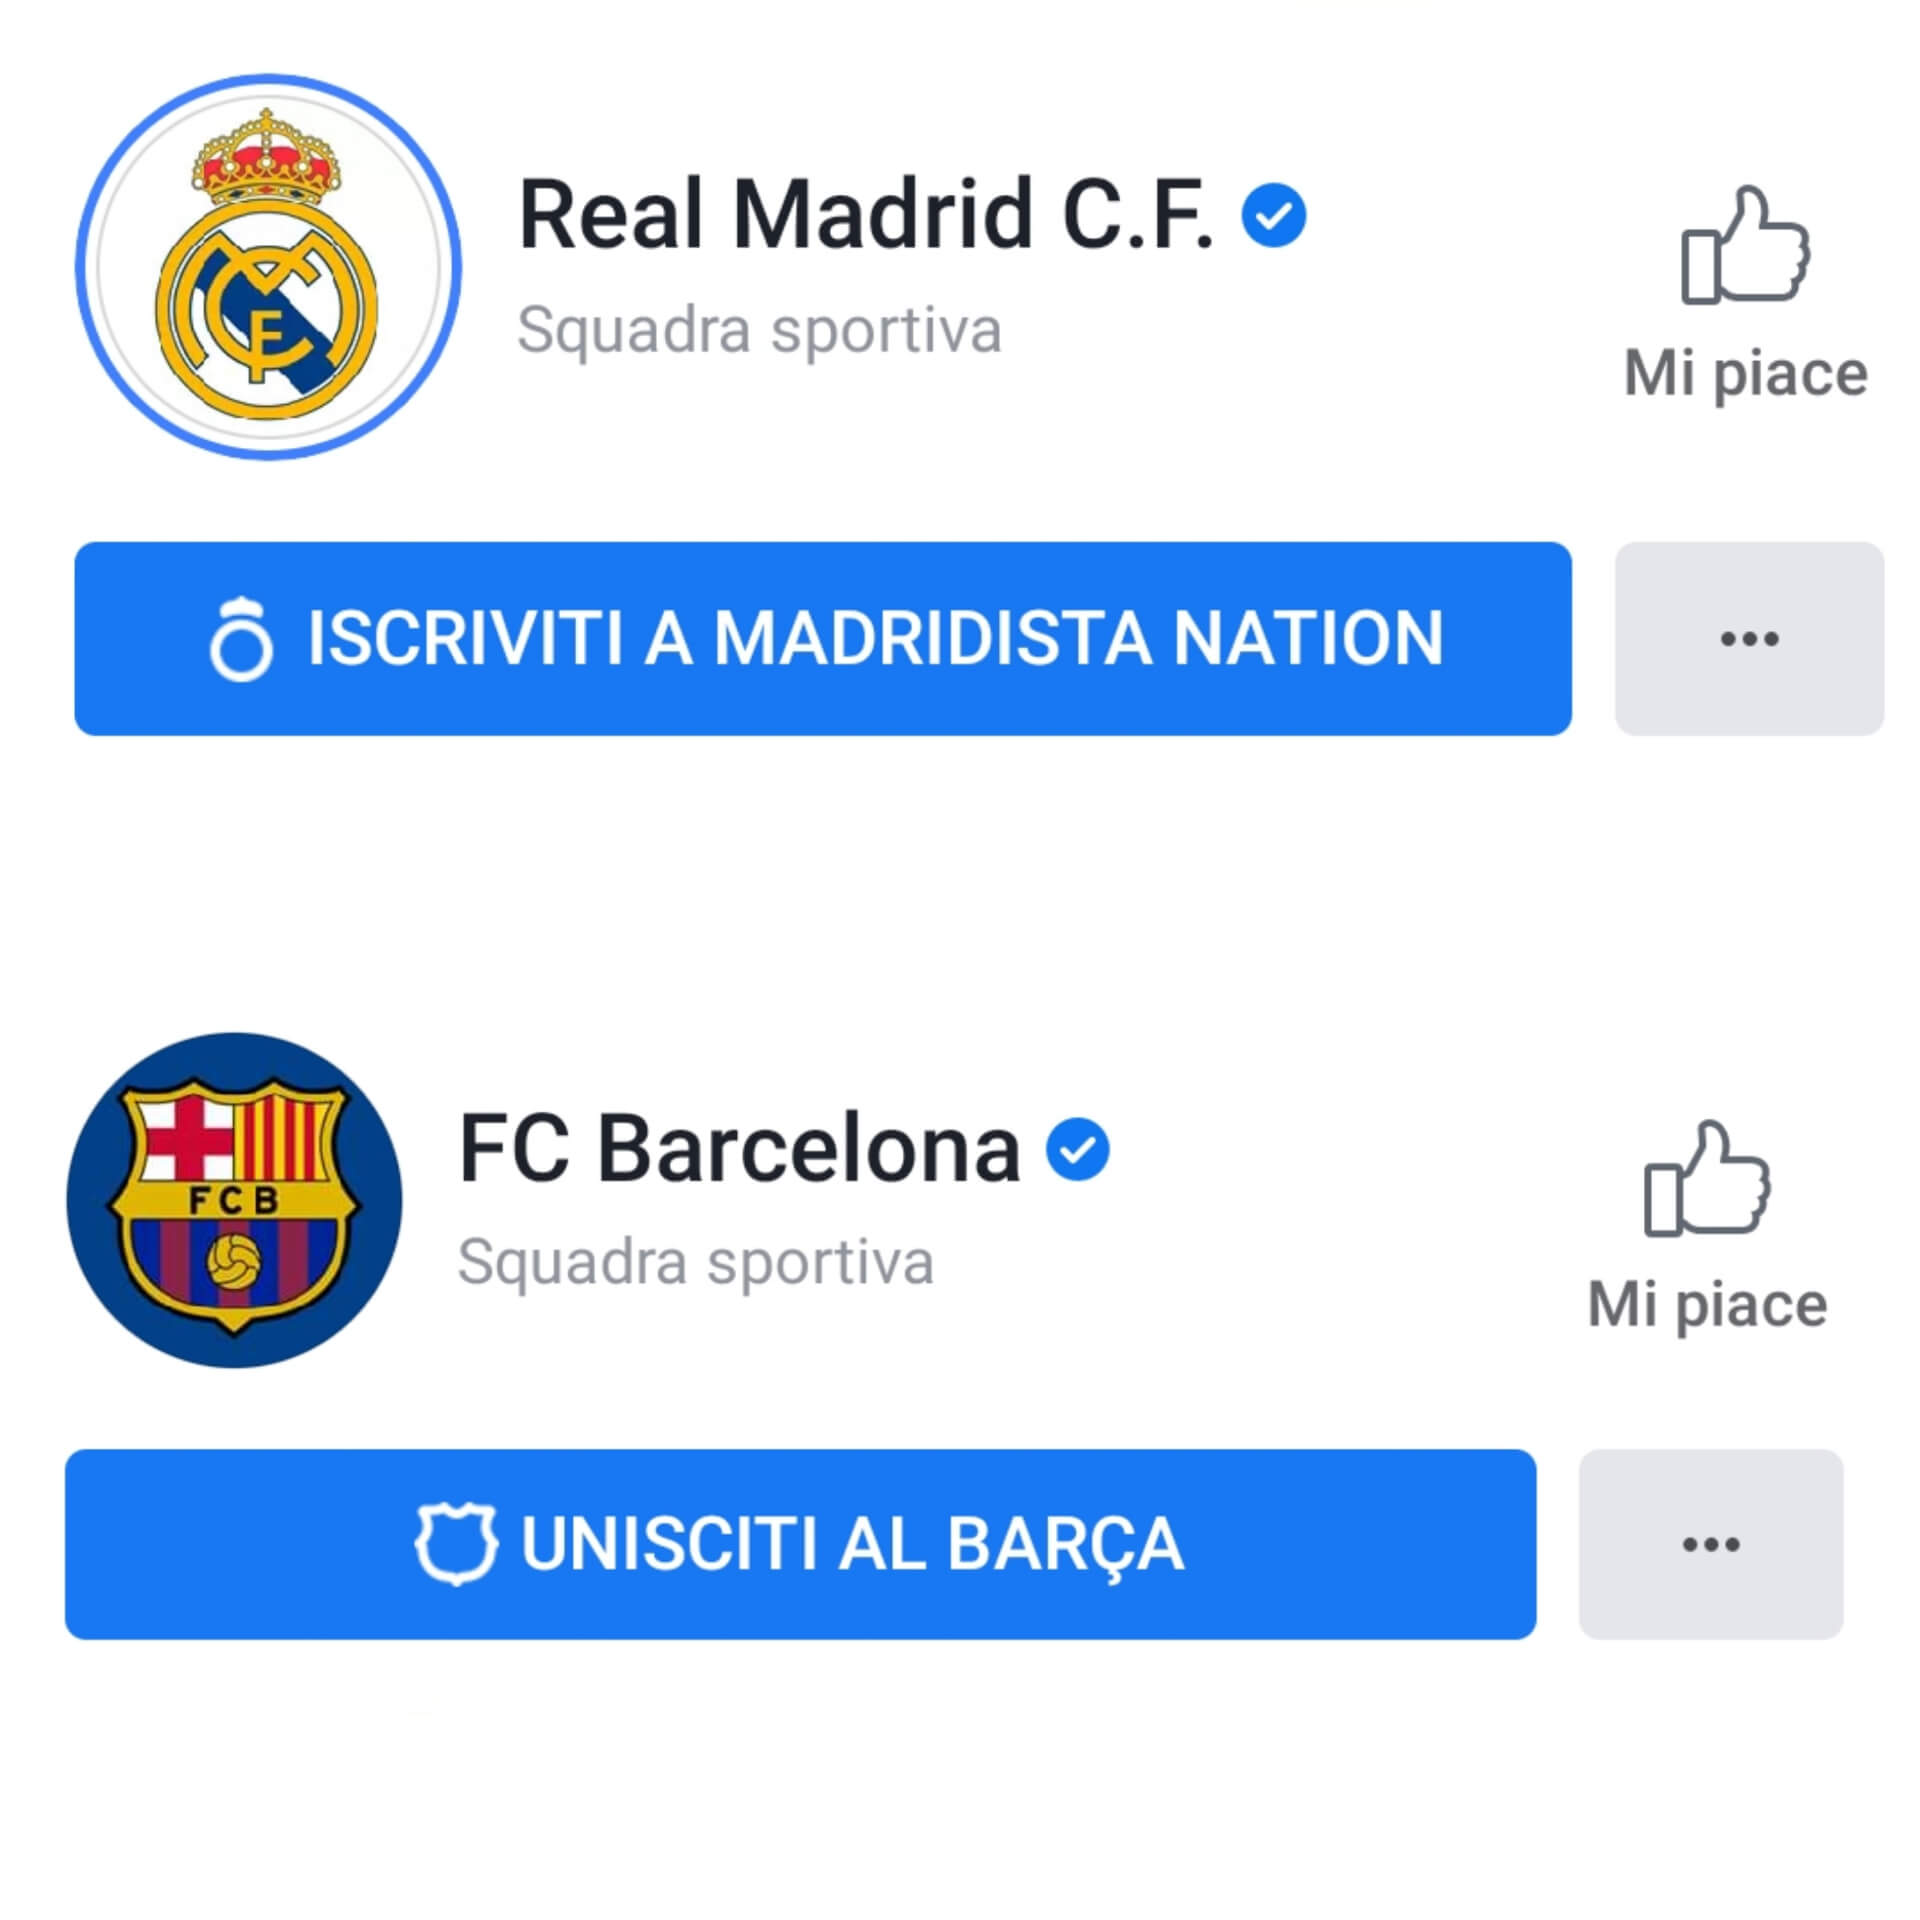 Real Madrid - Barcellona Facebook Subscription